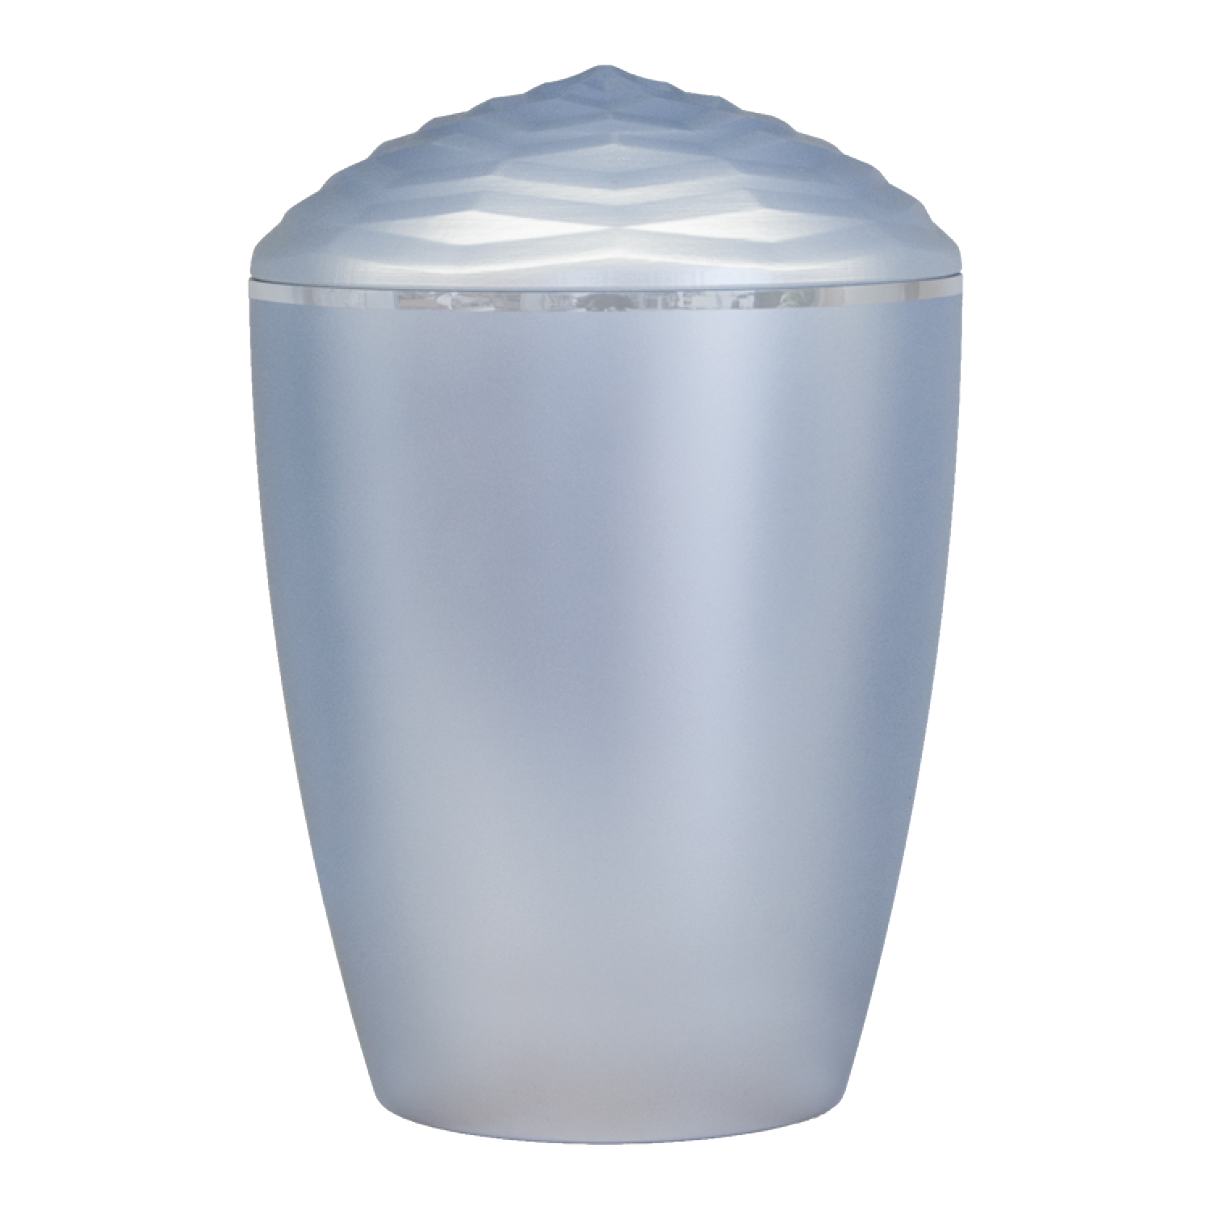 Forest Silver Band Bio Cremation Urn – Light Blue